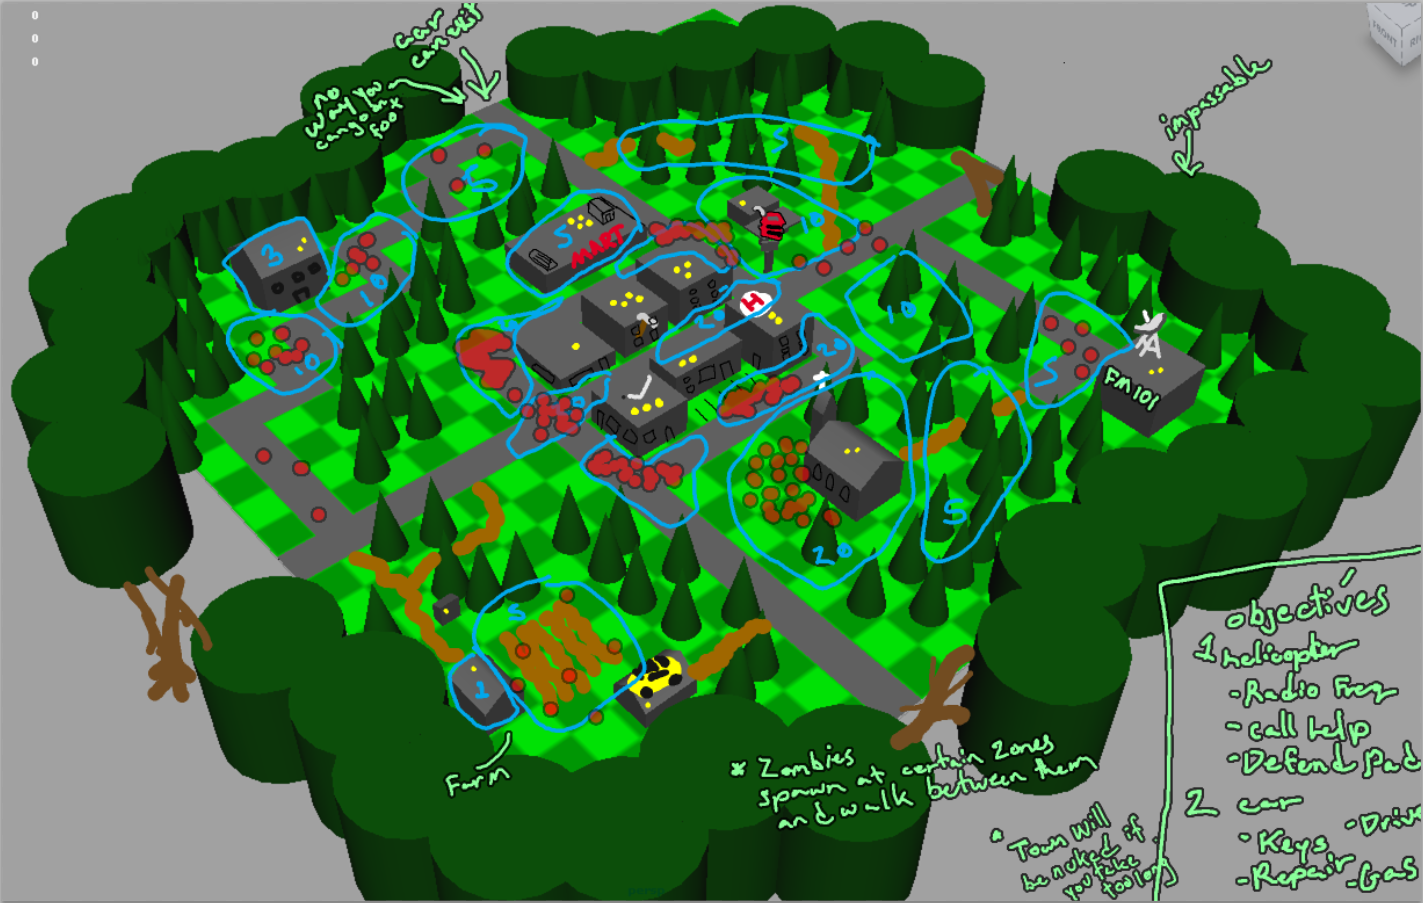 test map layout image  Zombie Apocalypse mod for Unreal